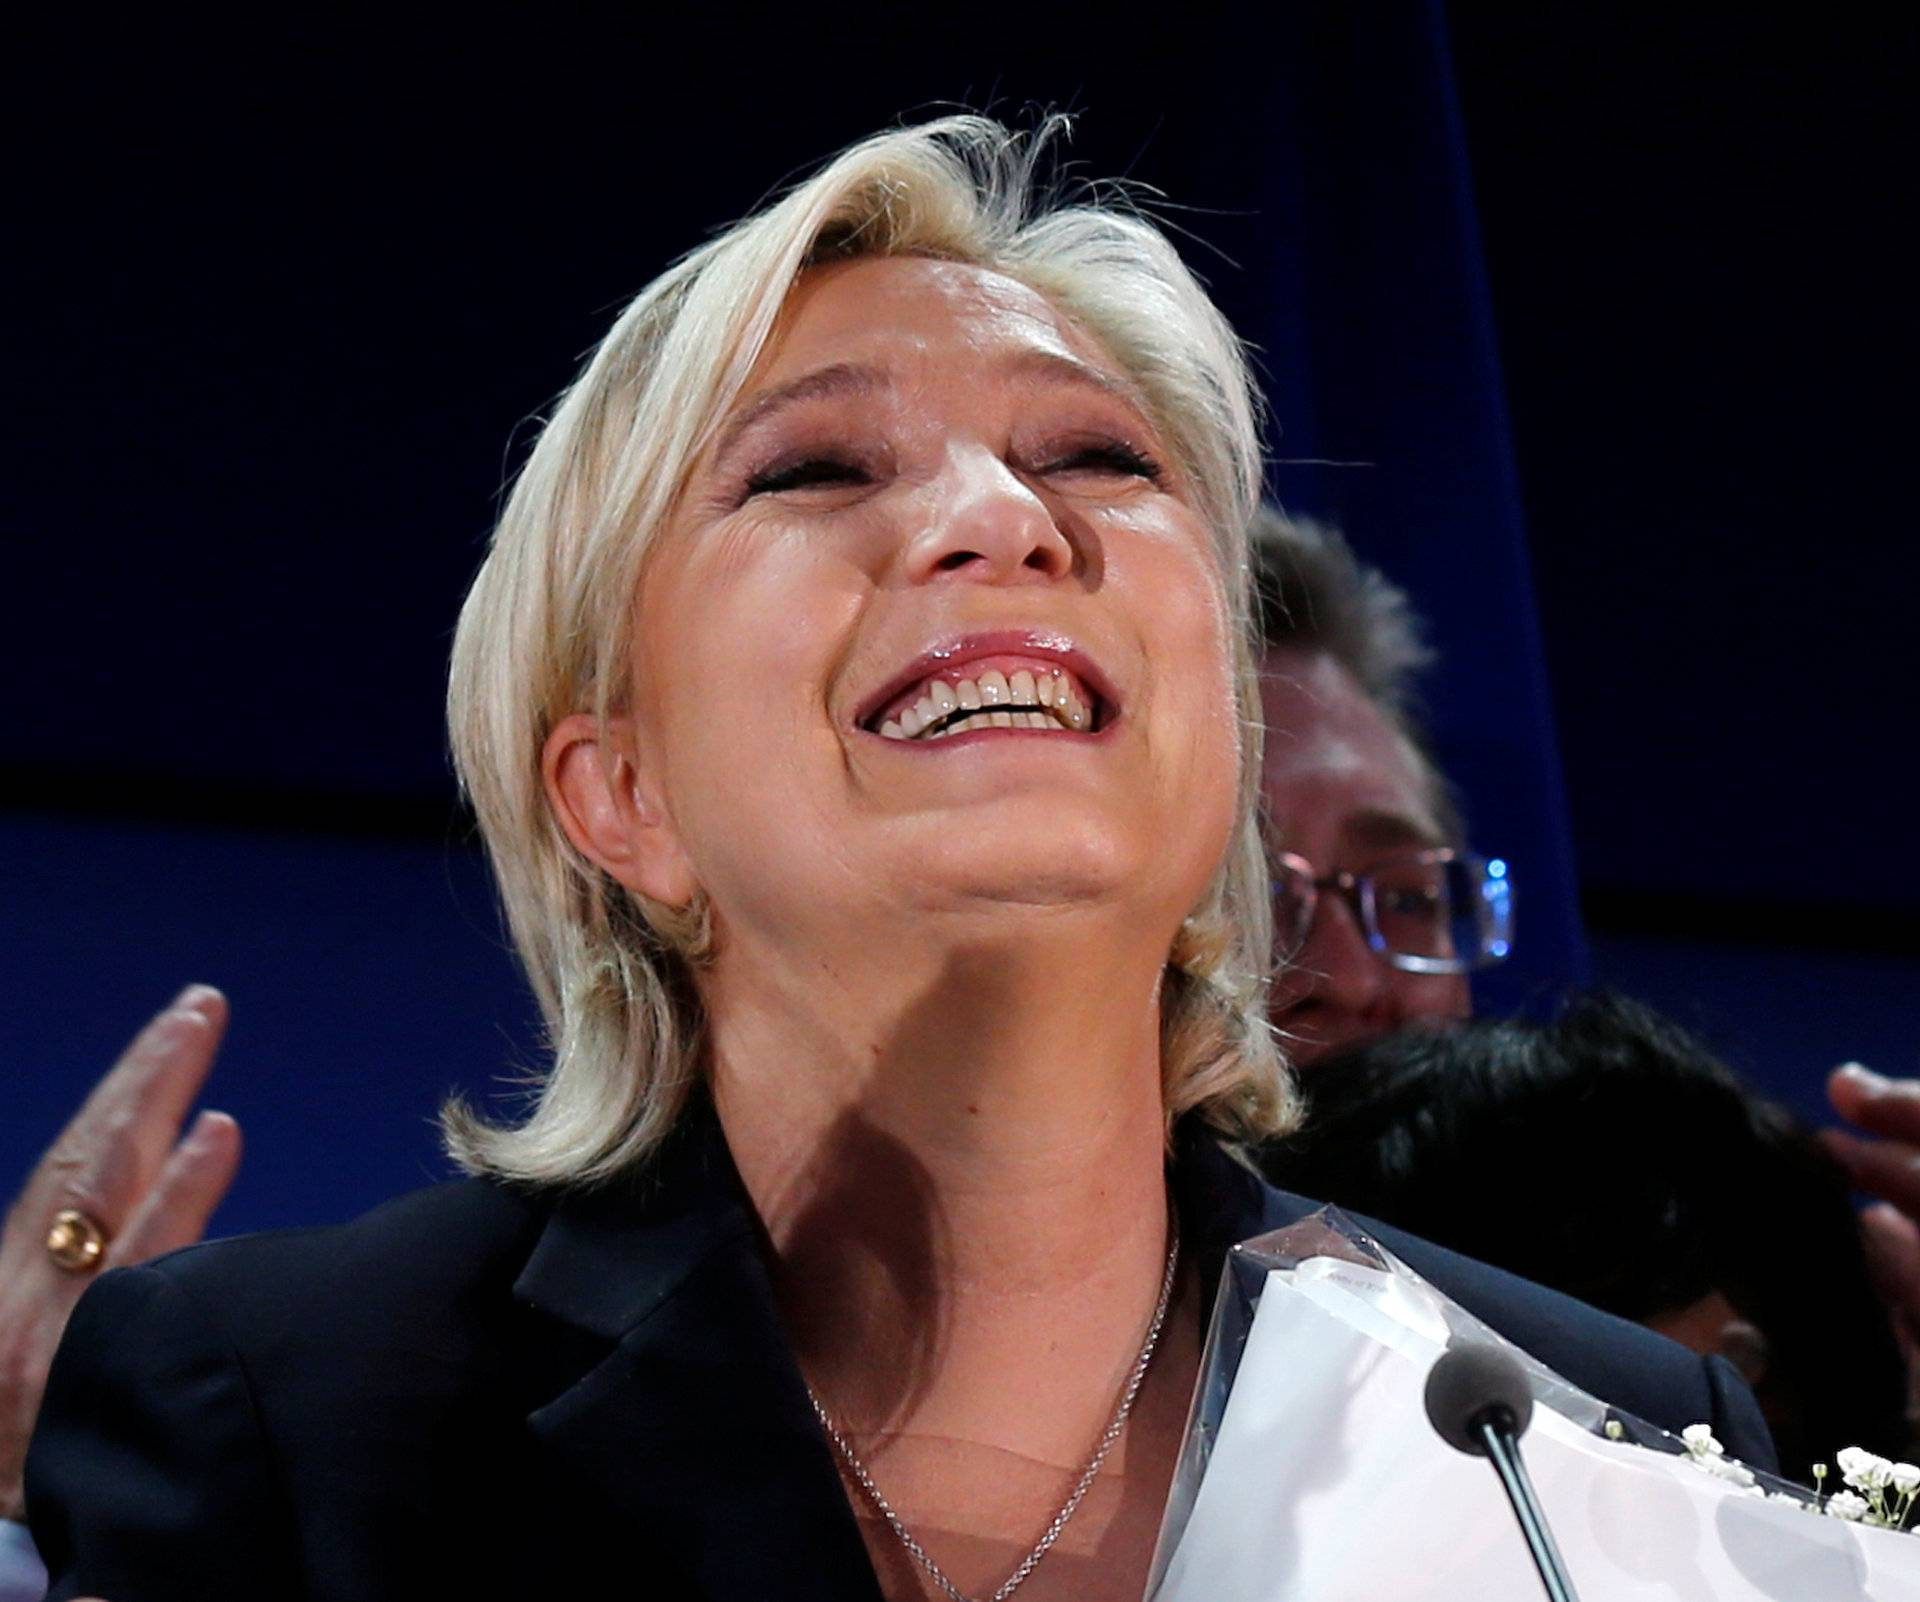 Marine Le Pen, French National Front (FN) political party leader and candidate for French 2017 presidential election, celebrates after early results in the first round of 2017 French presidential election, in Henin-Beaumont